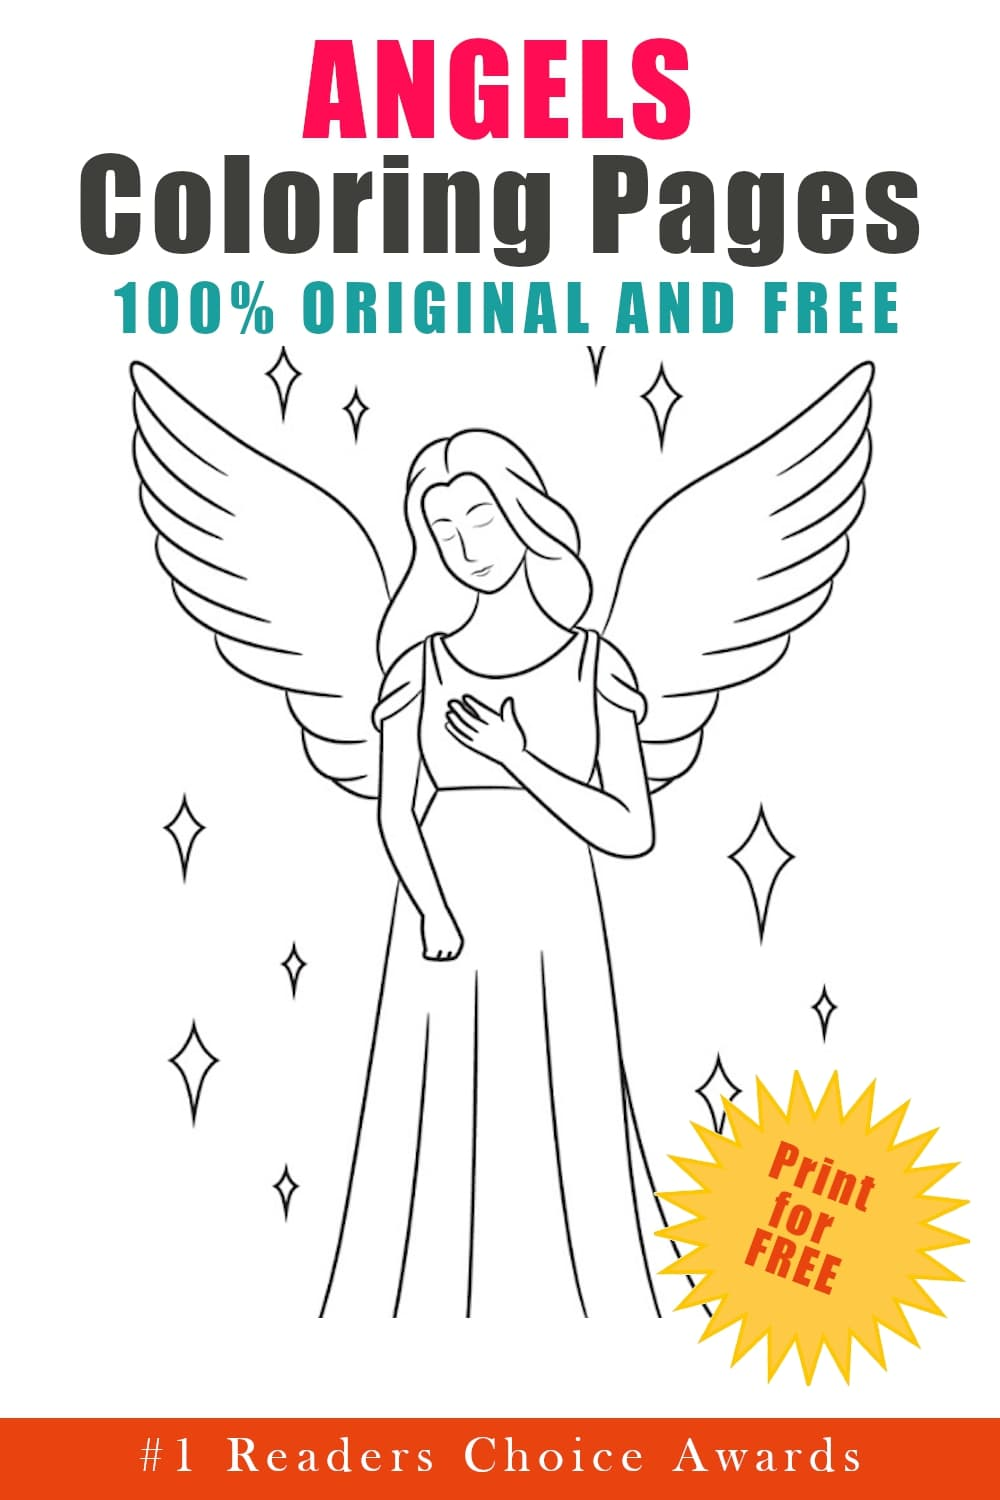 original and free angels coloring pages